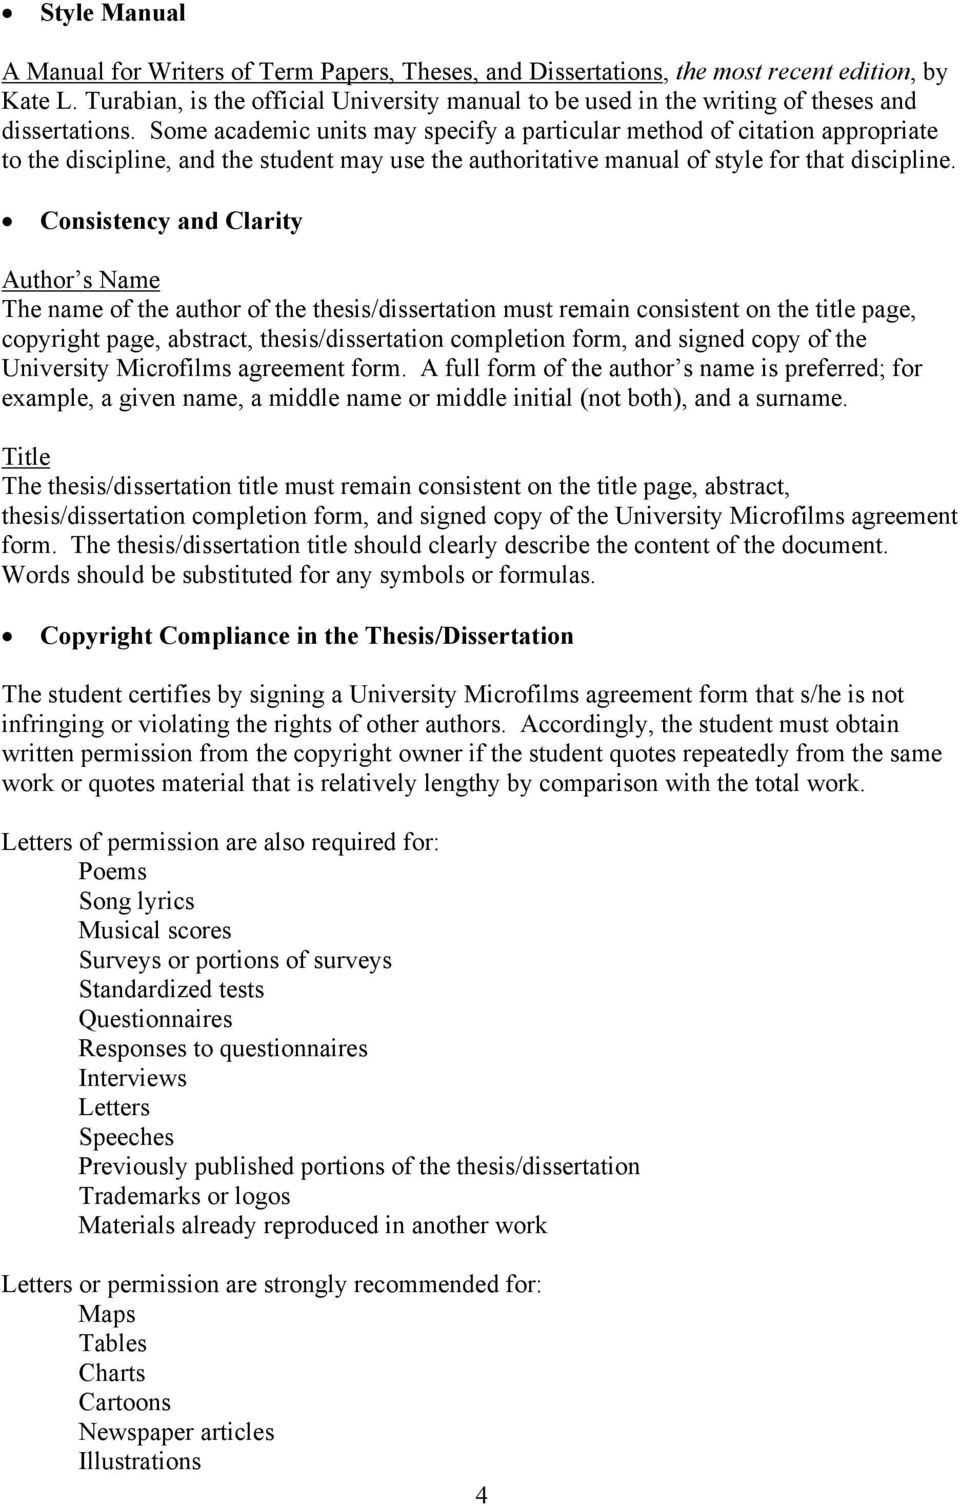 Essay On The Cold War Bubonic Plague Essay Essay About Myself Black Death Thesis Black Black Death  Thesis Related Post Of Examples Of Discriptive Essay also Thesis Statement Example For Essays Black Plague Essay The Impact Of The Black Plague On Europe Sample  Essay On Economic Crisis